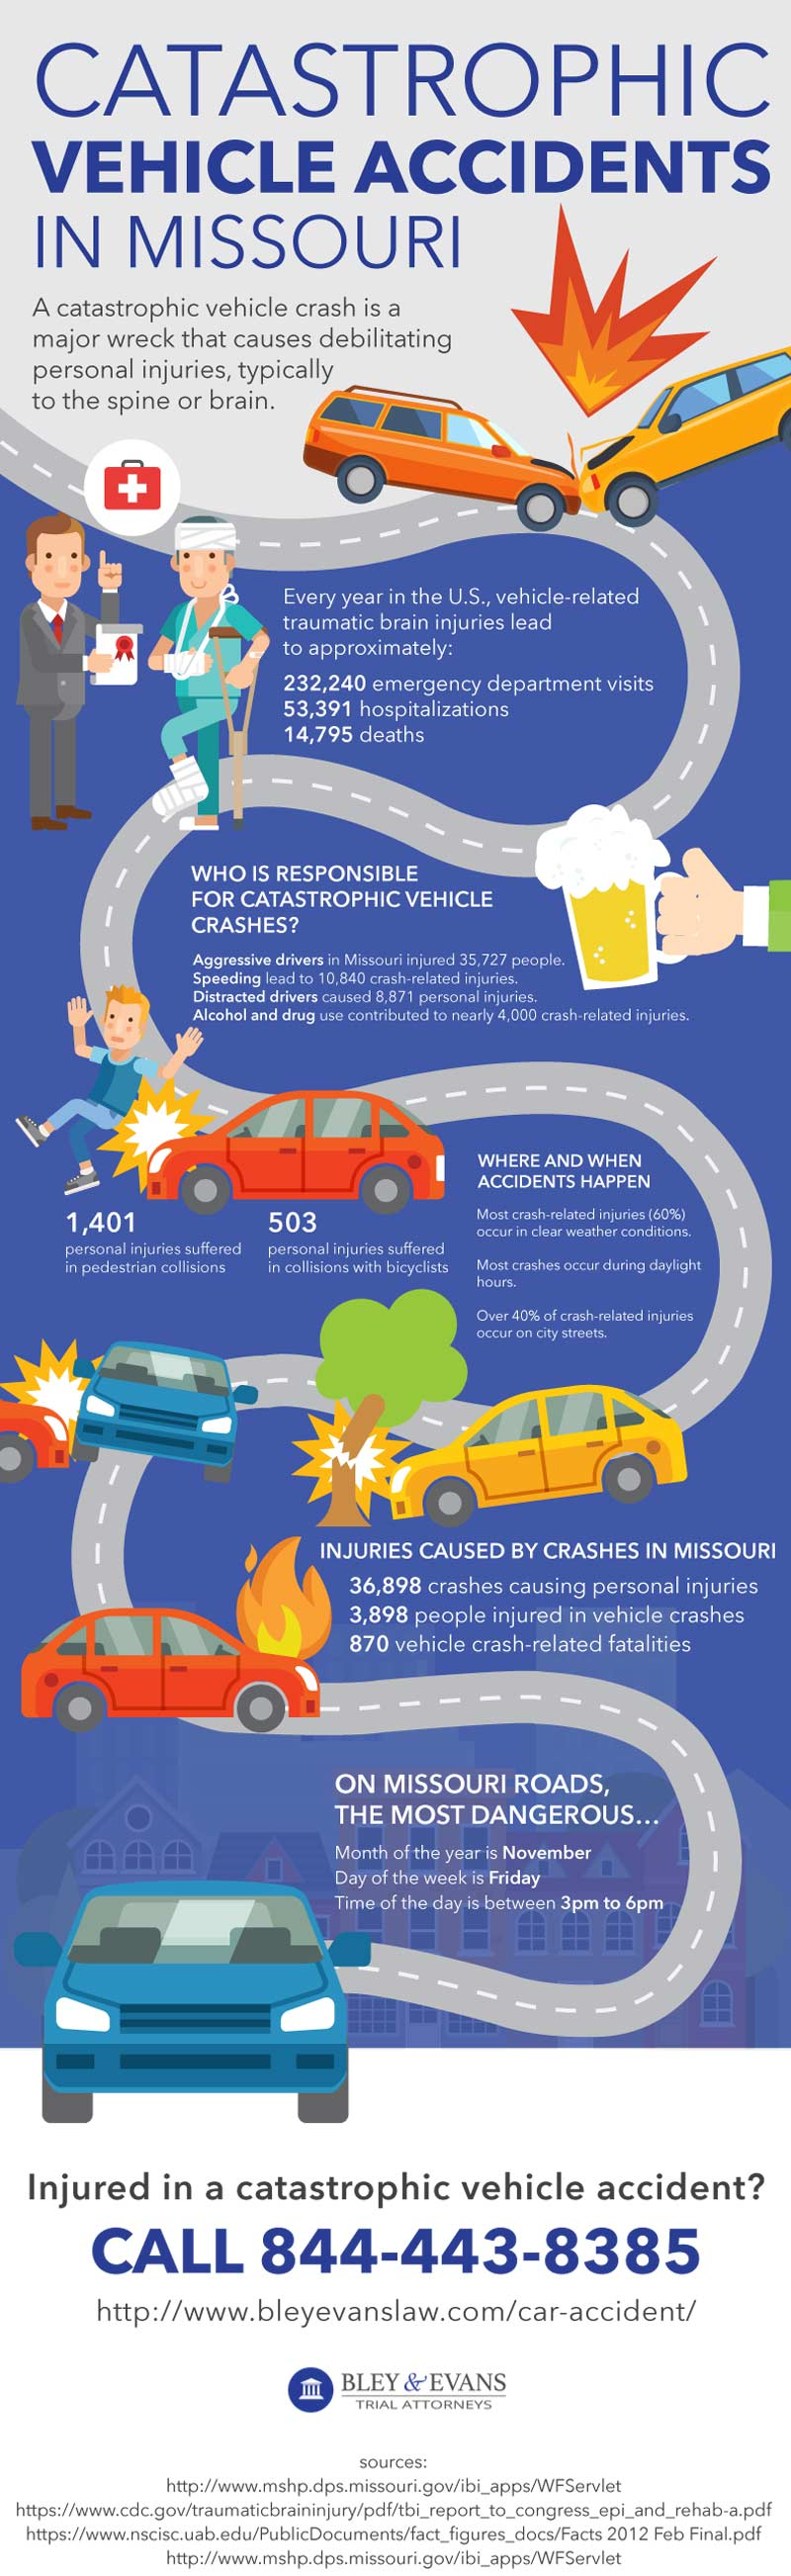 Catastrophic Vehicle Accidents in Missouri infographic